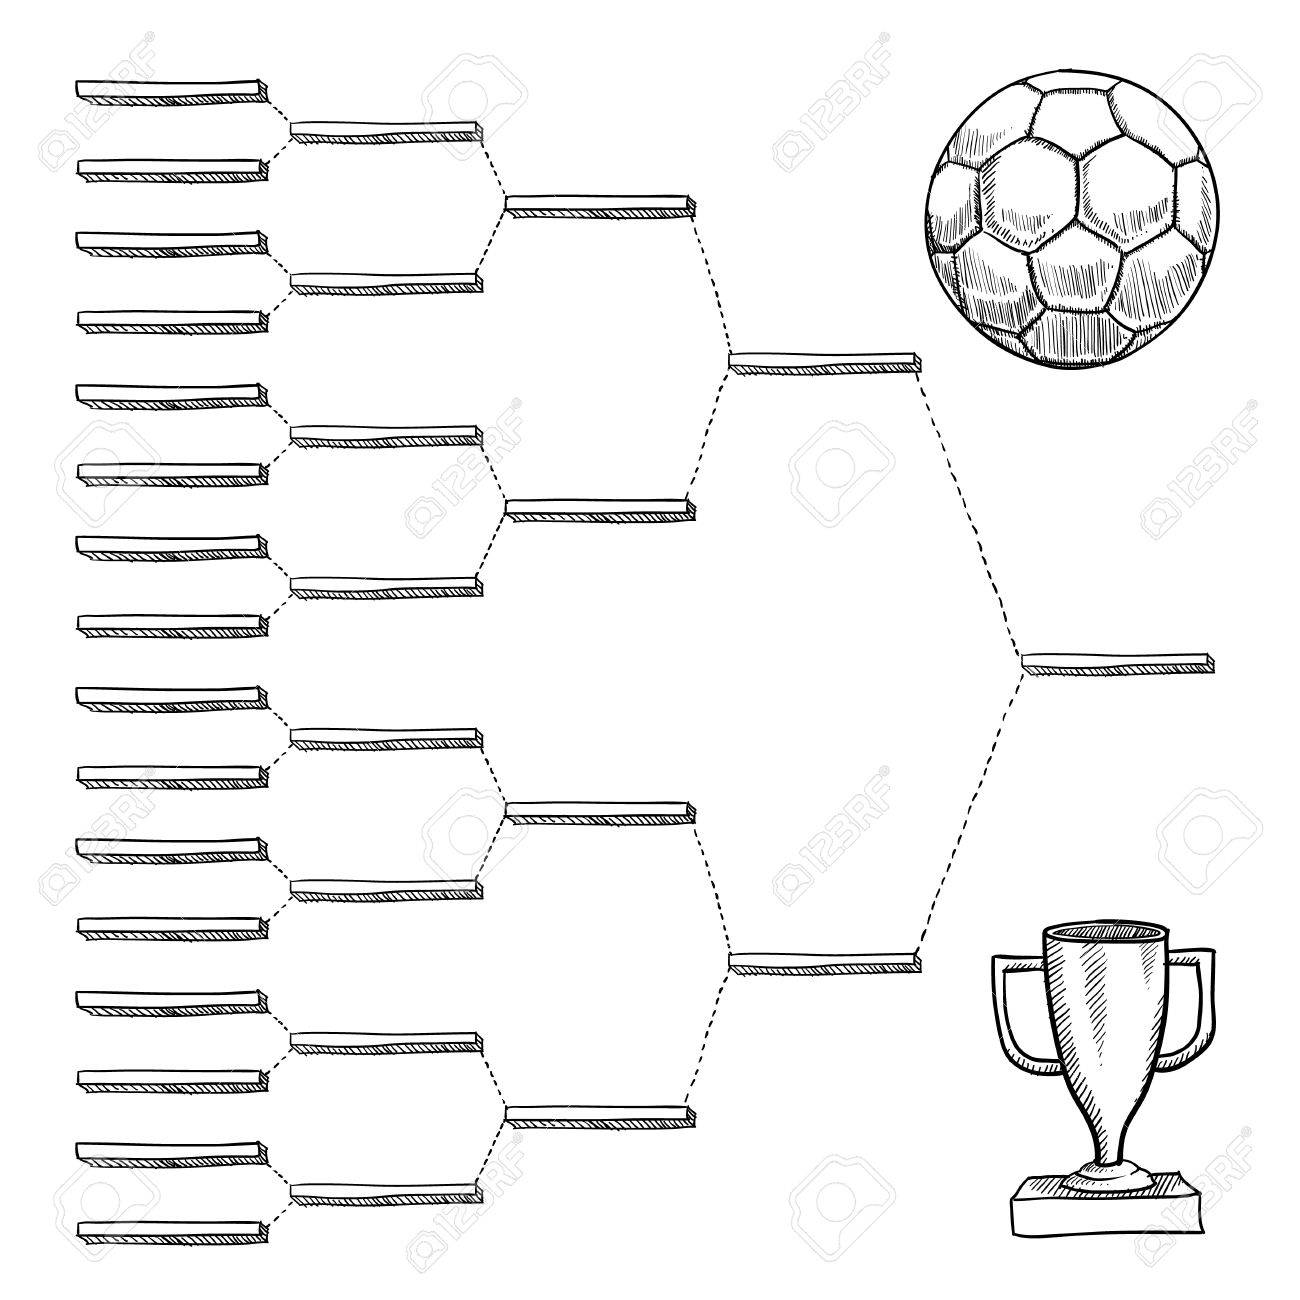 Blank international soccer playoff bracket - vector file with doodle style Stock Photo - 11575086